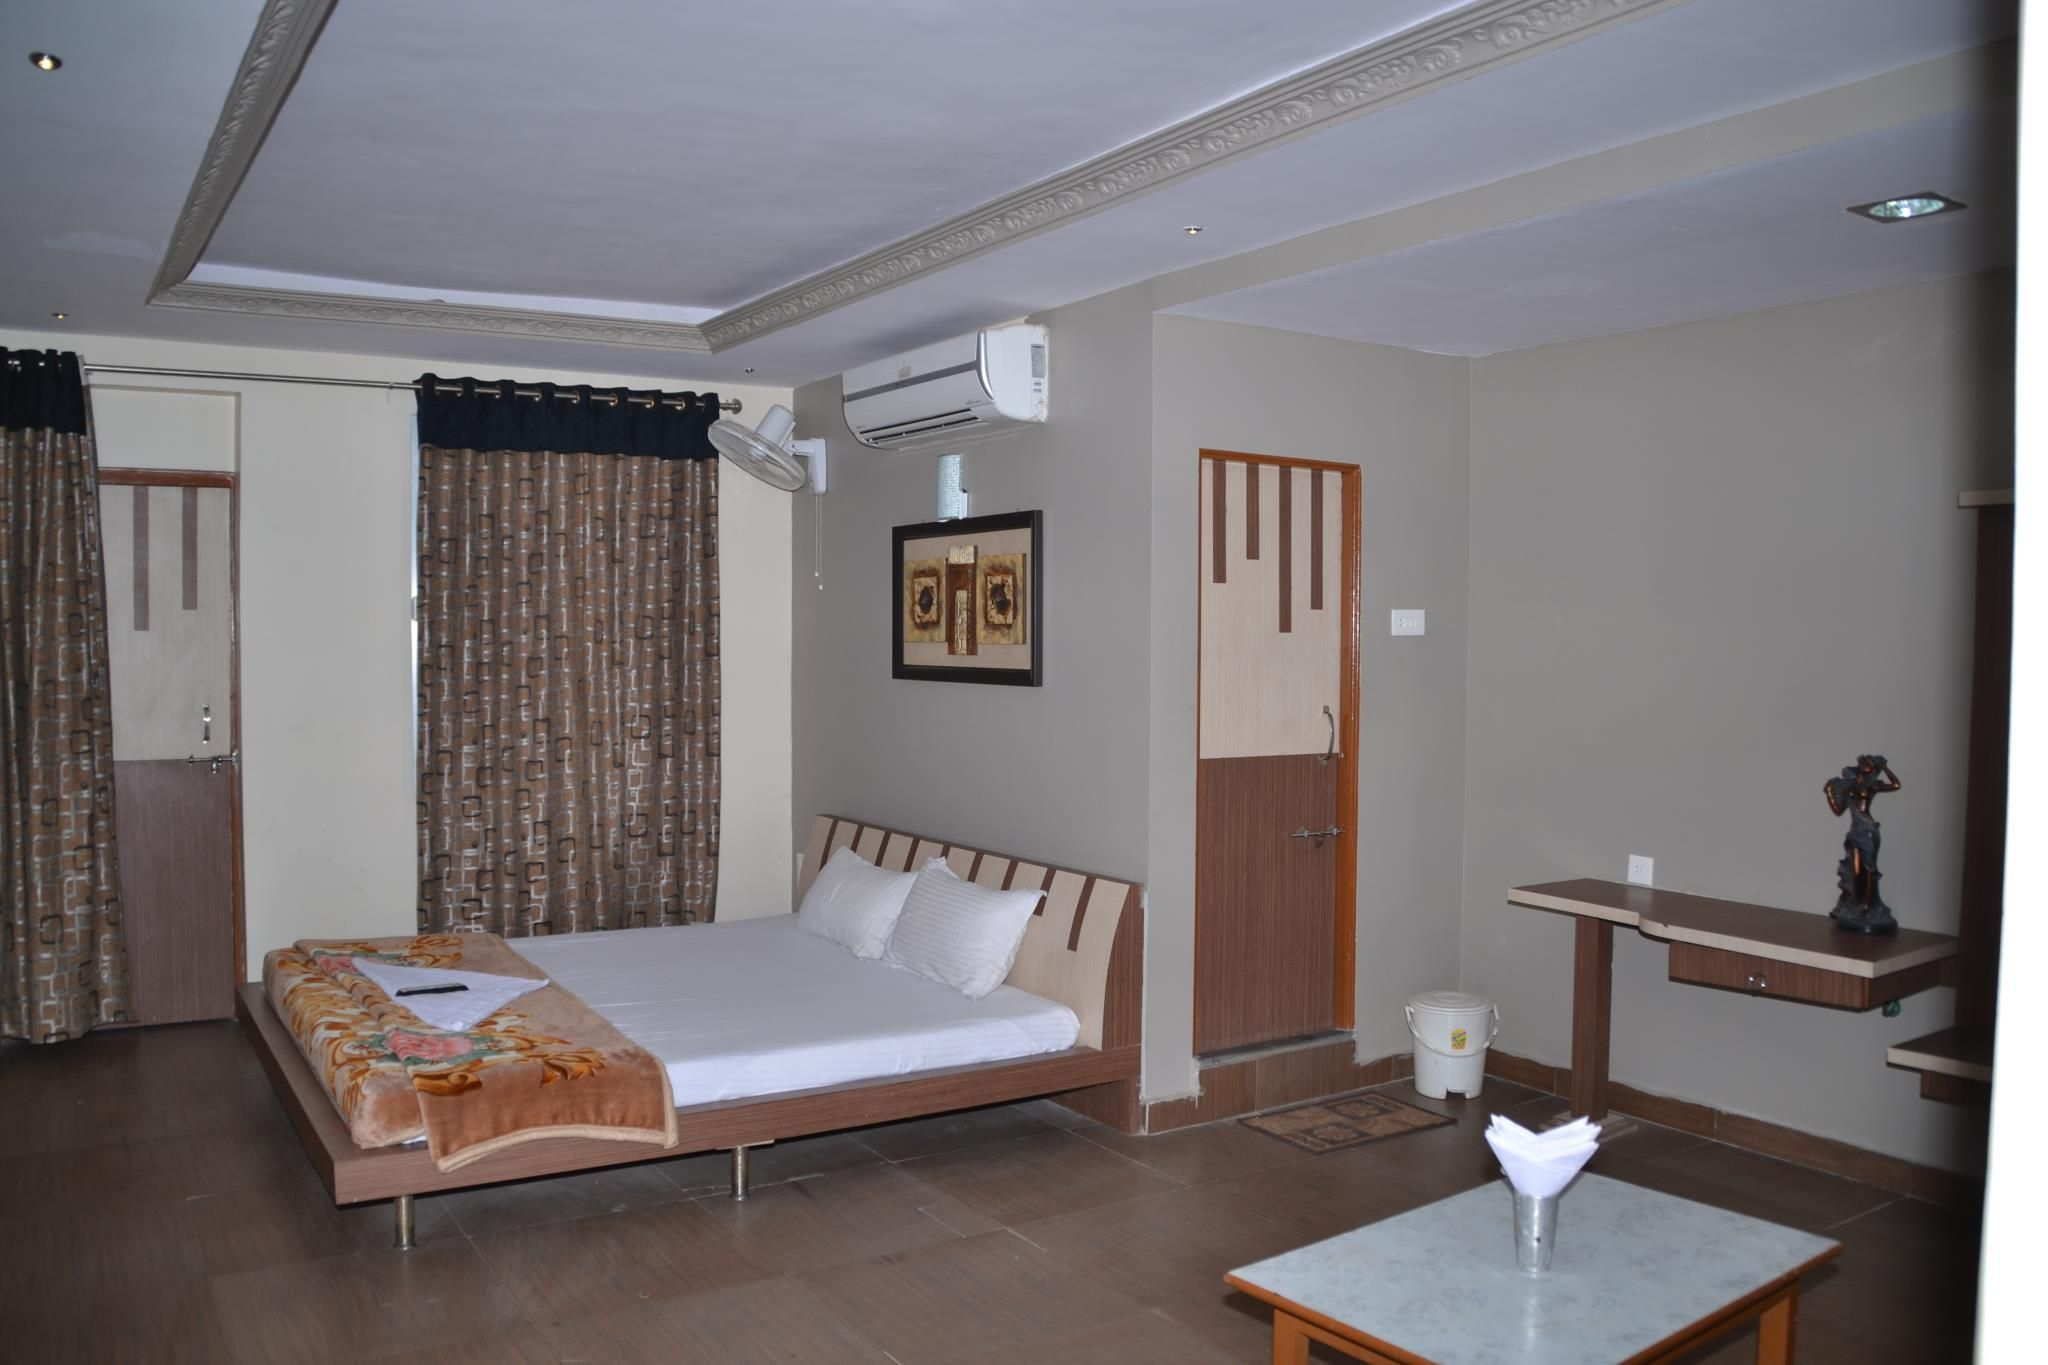 Hotel Sunrise N Resorts Nagpur, India